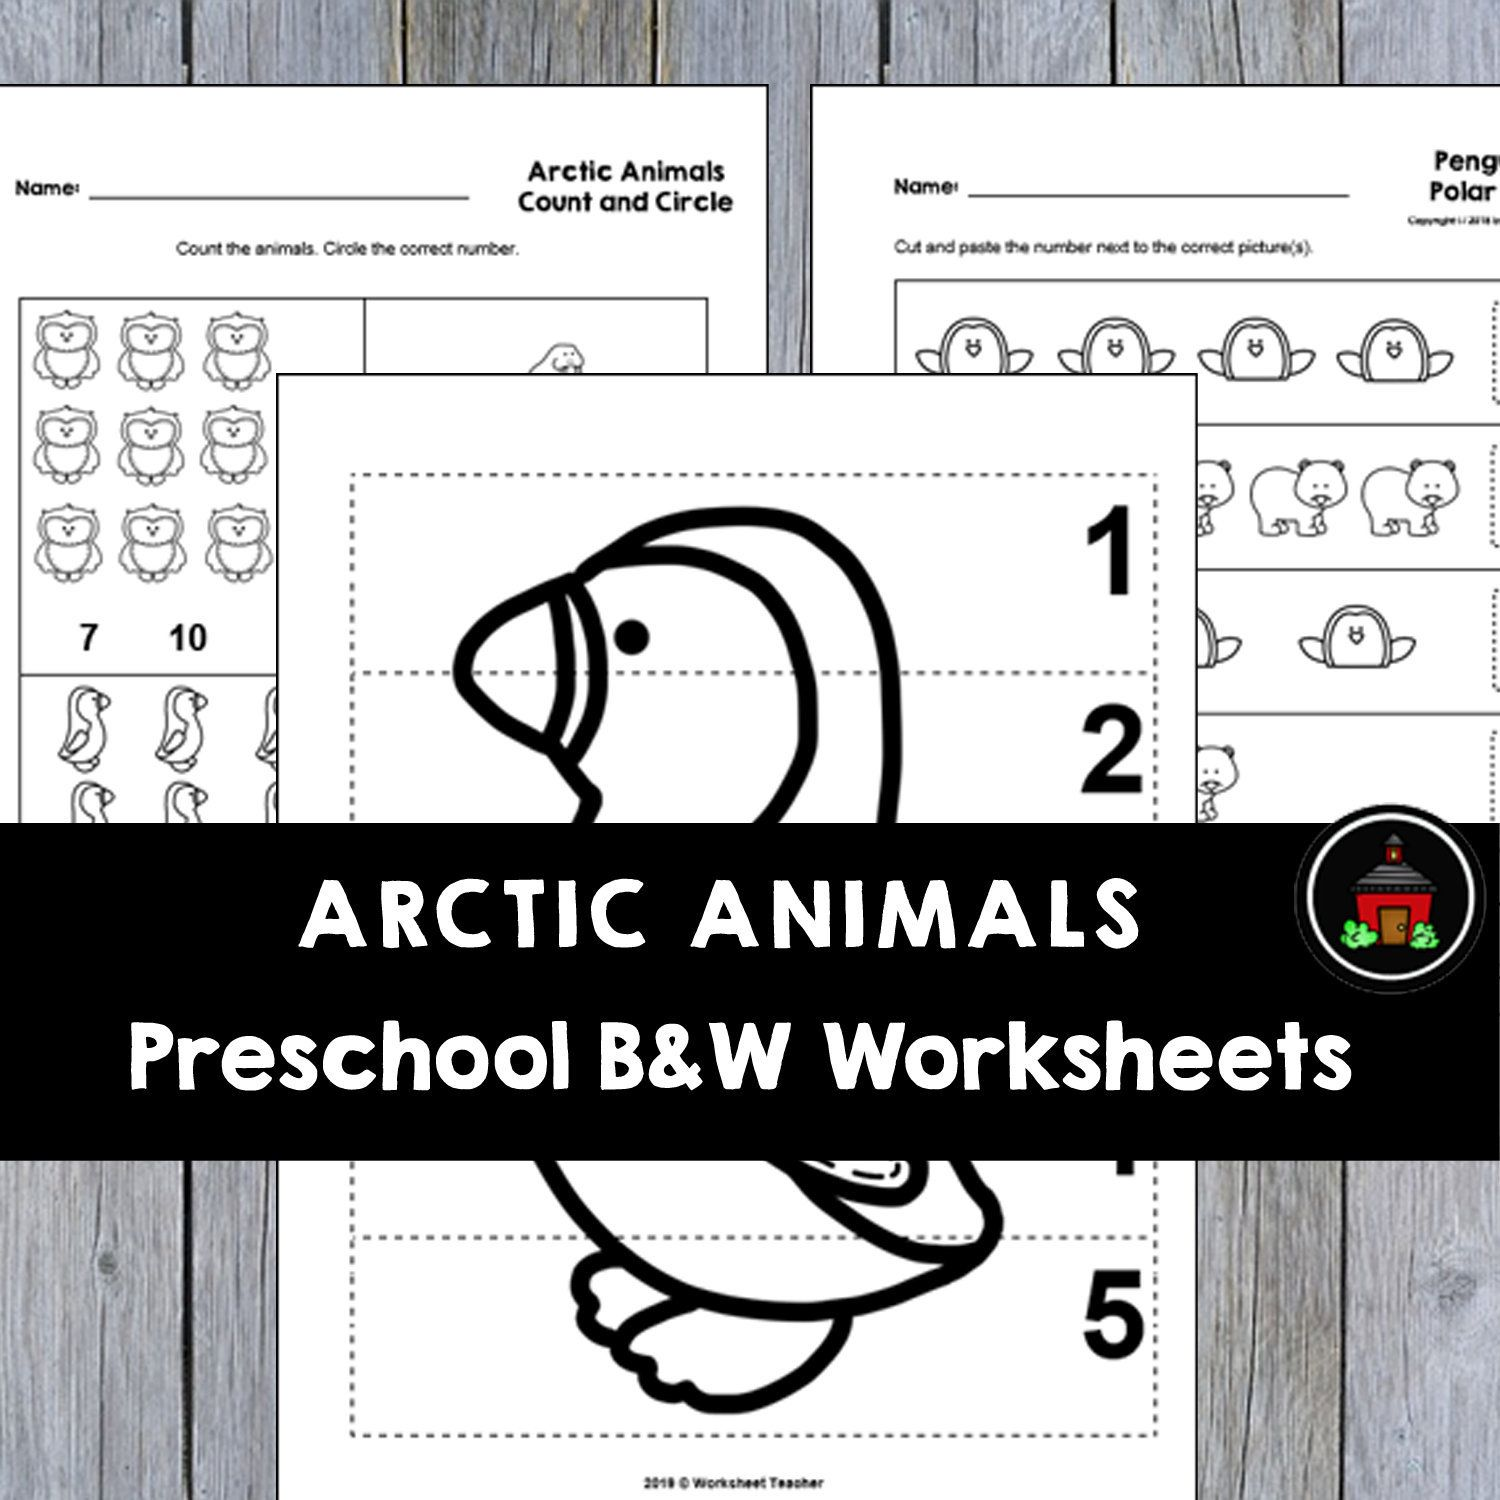 10 Arctic Animals Preschool Curriculum Activities